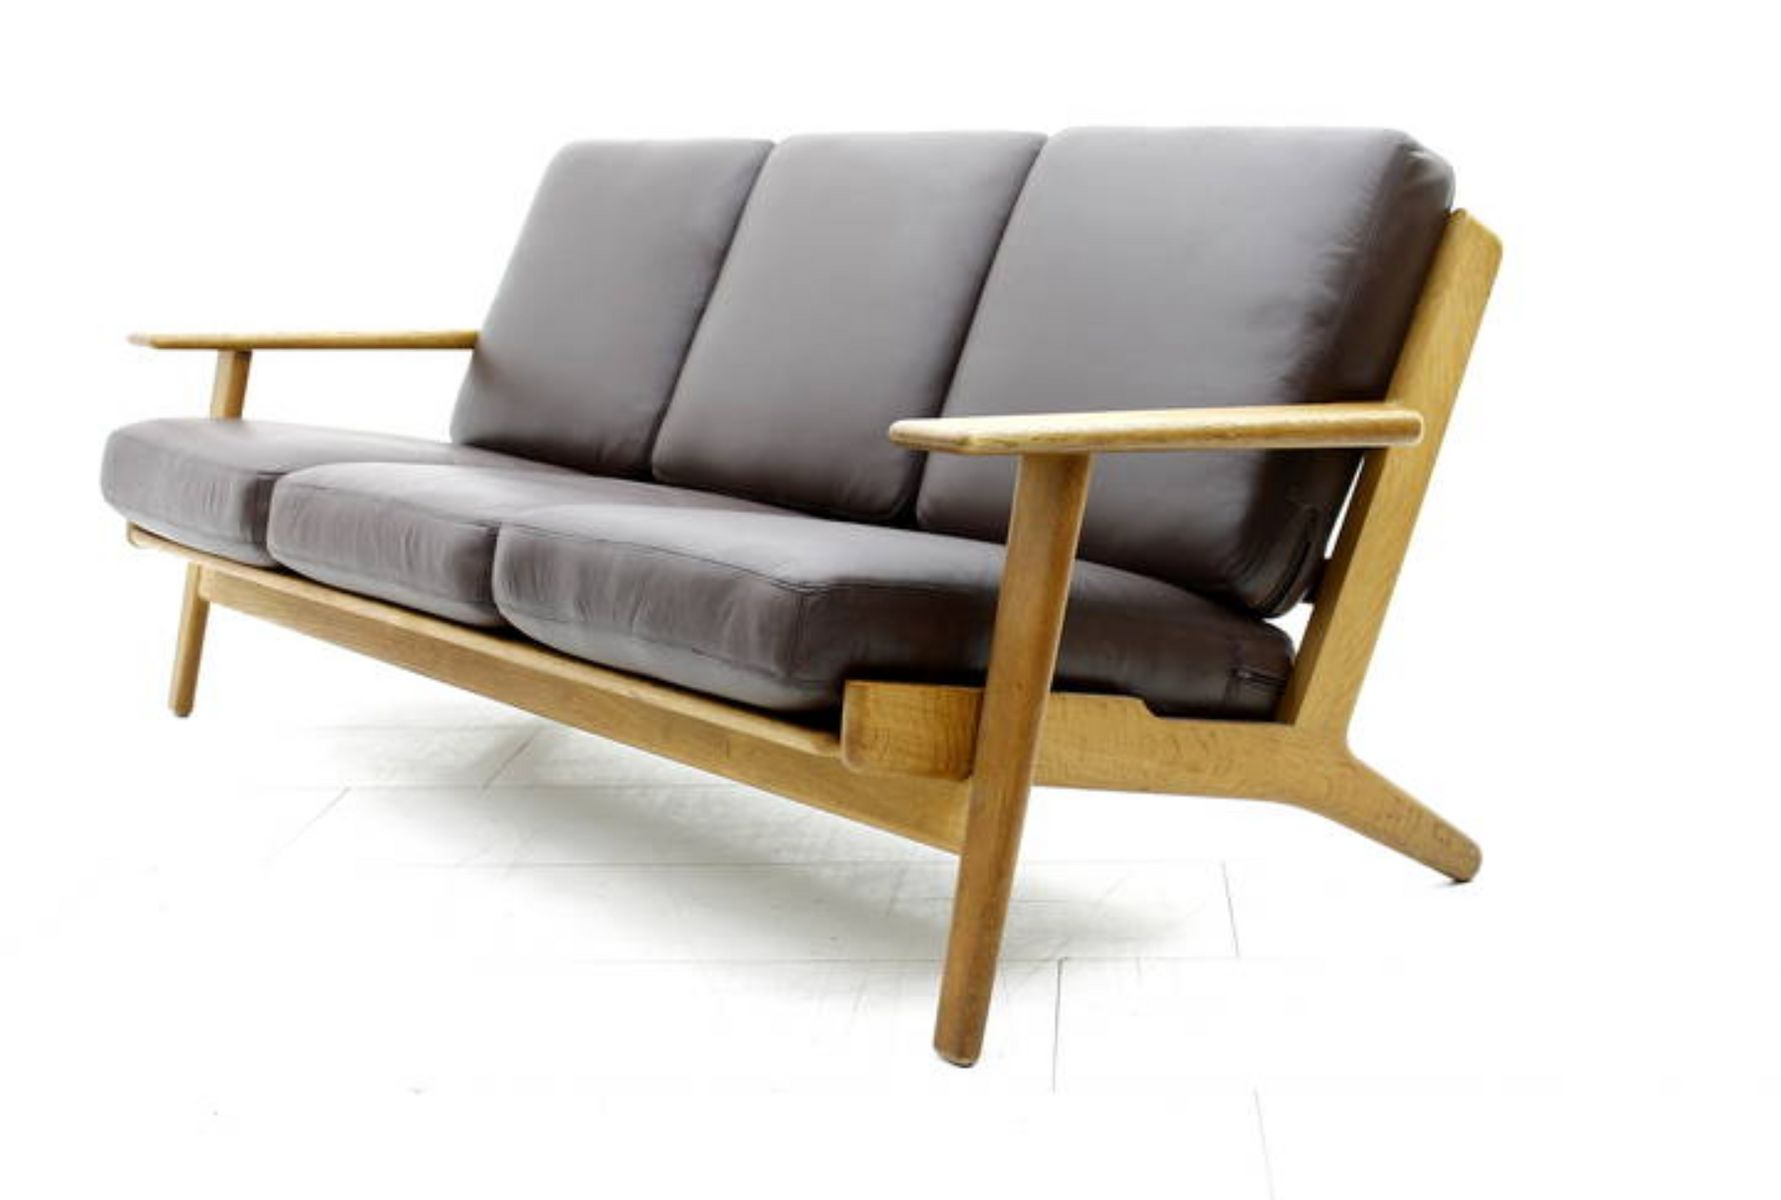 Danish Oak And Leather Sofa By Hans J Wegner For Getama 1960s For Sale At Pamono